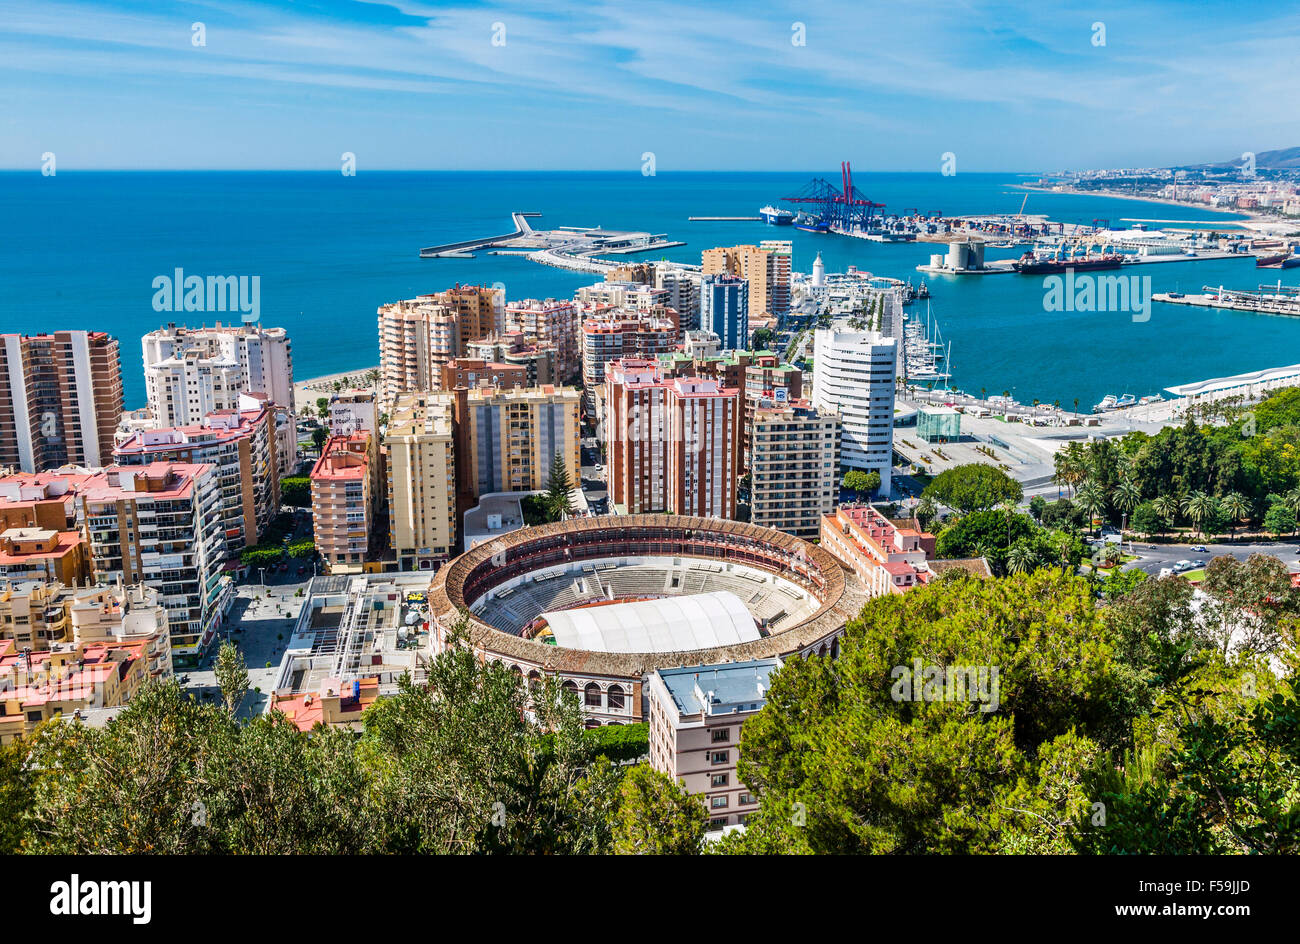 spain andalusia malaga province malaga city view of the harbour stock photo 89337317 alamy. Black Bedroom Furniture Sets. Home Design Ideas